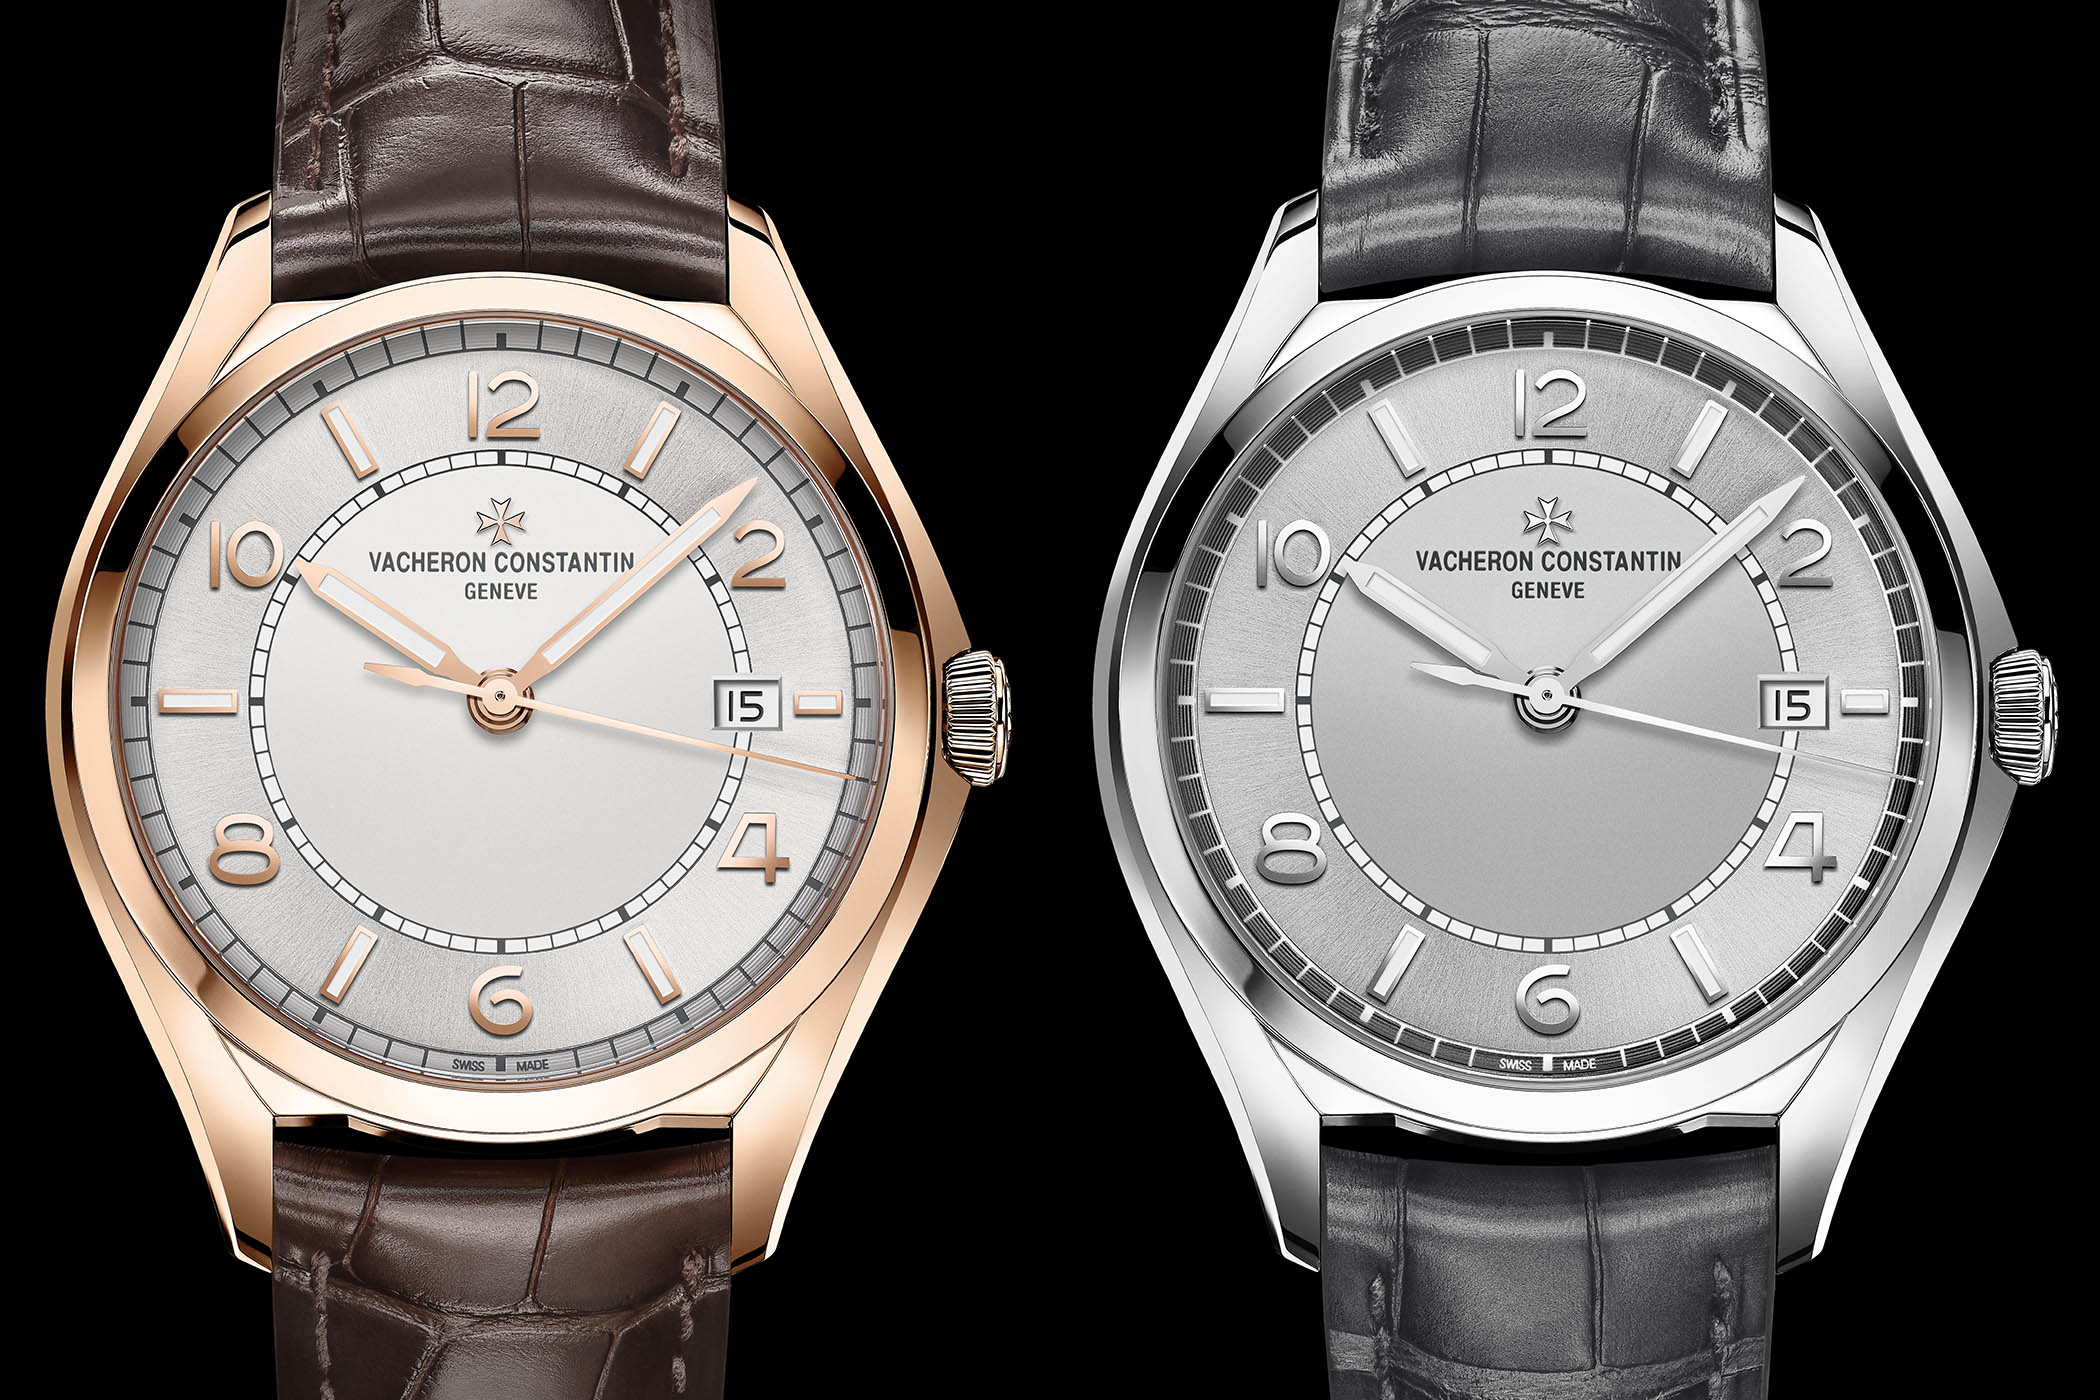 Vacheron Constantin FIFTYSIX self-winding - SIHH 2018